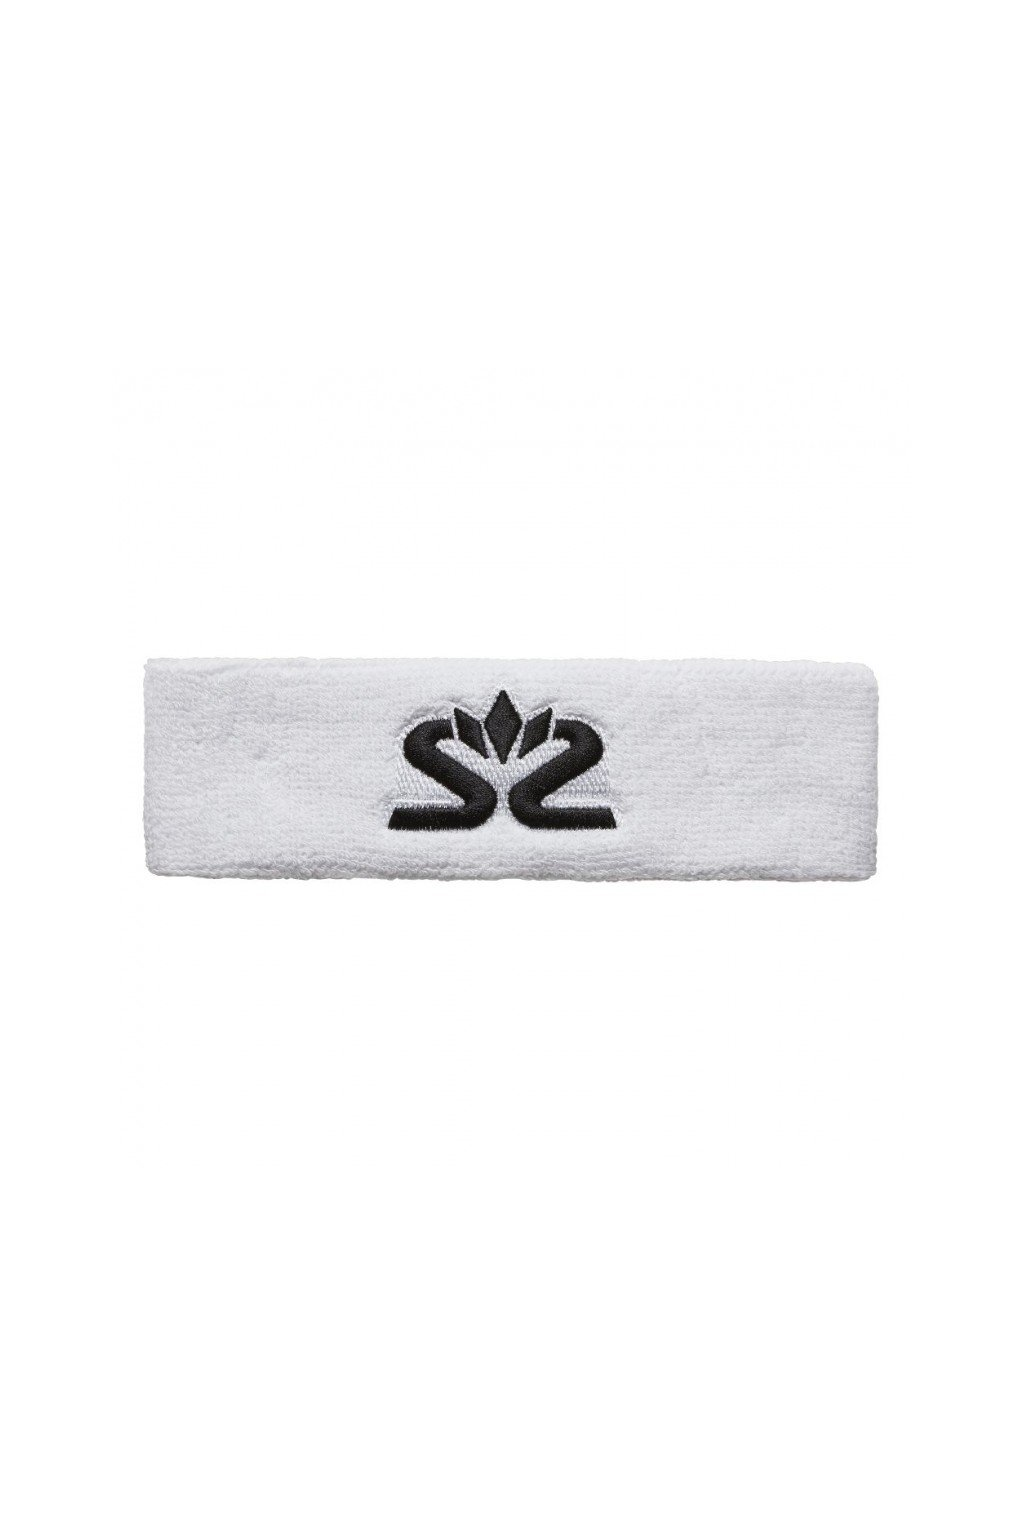 salming knitted headband white black